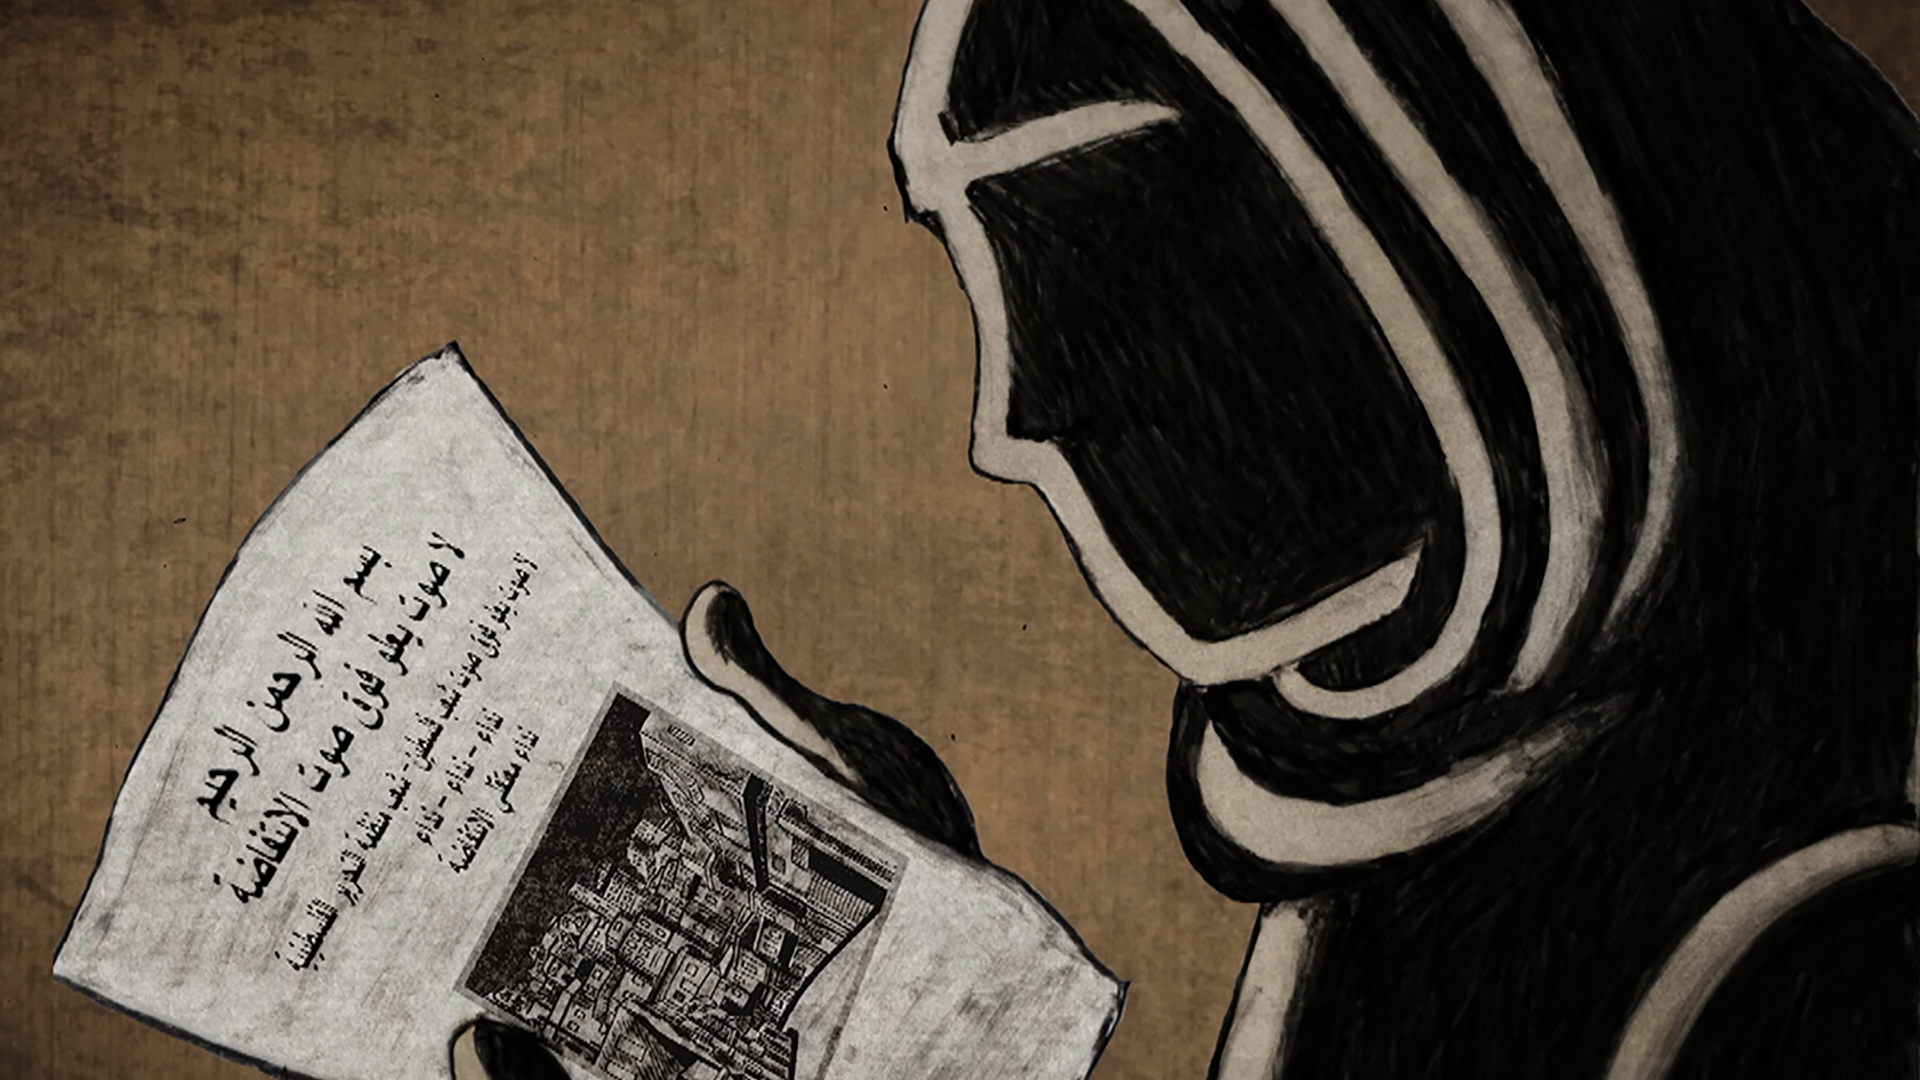 Woman and Leaflet, still from animated sequence in Naila and the Uprising, Directed by Julia Bacha. Image Courtesy of Just Vision.